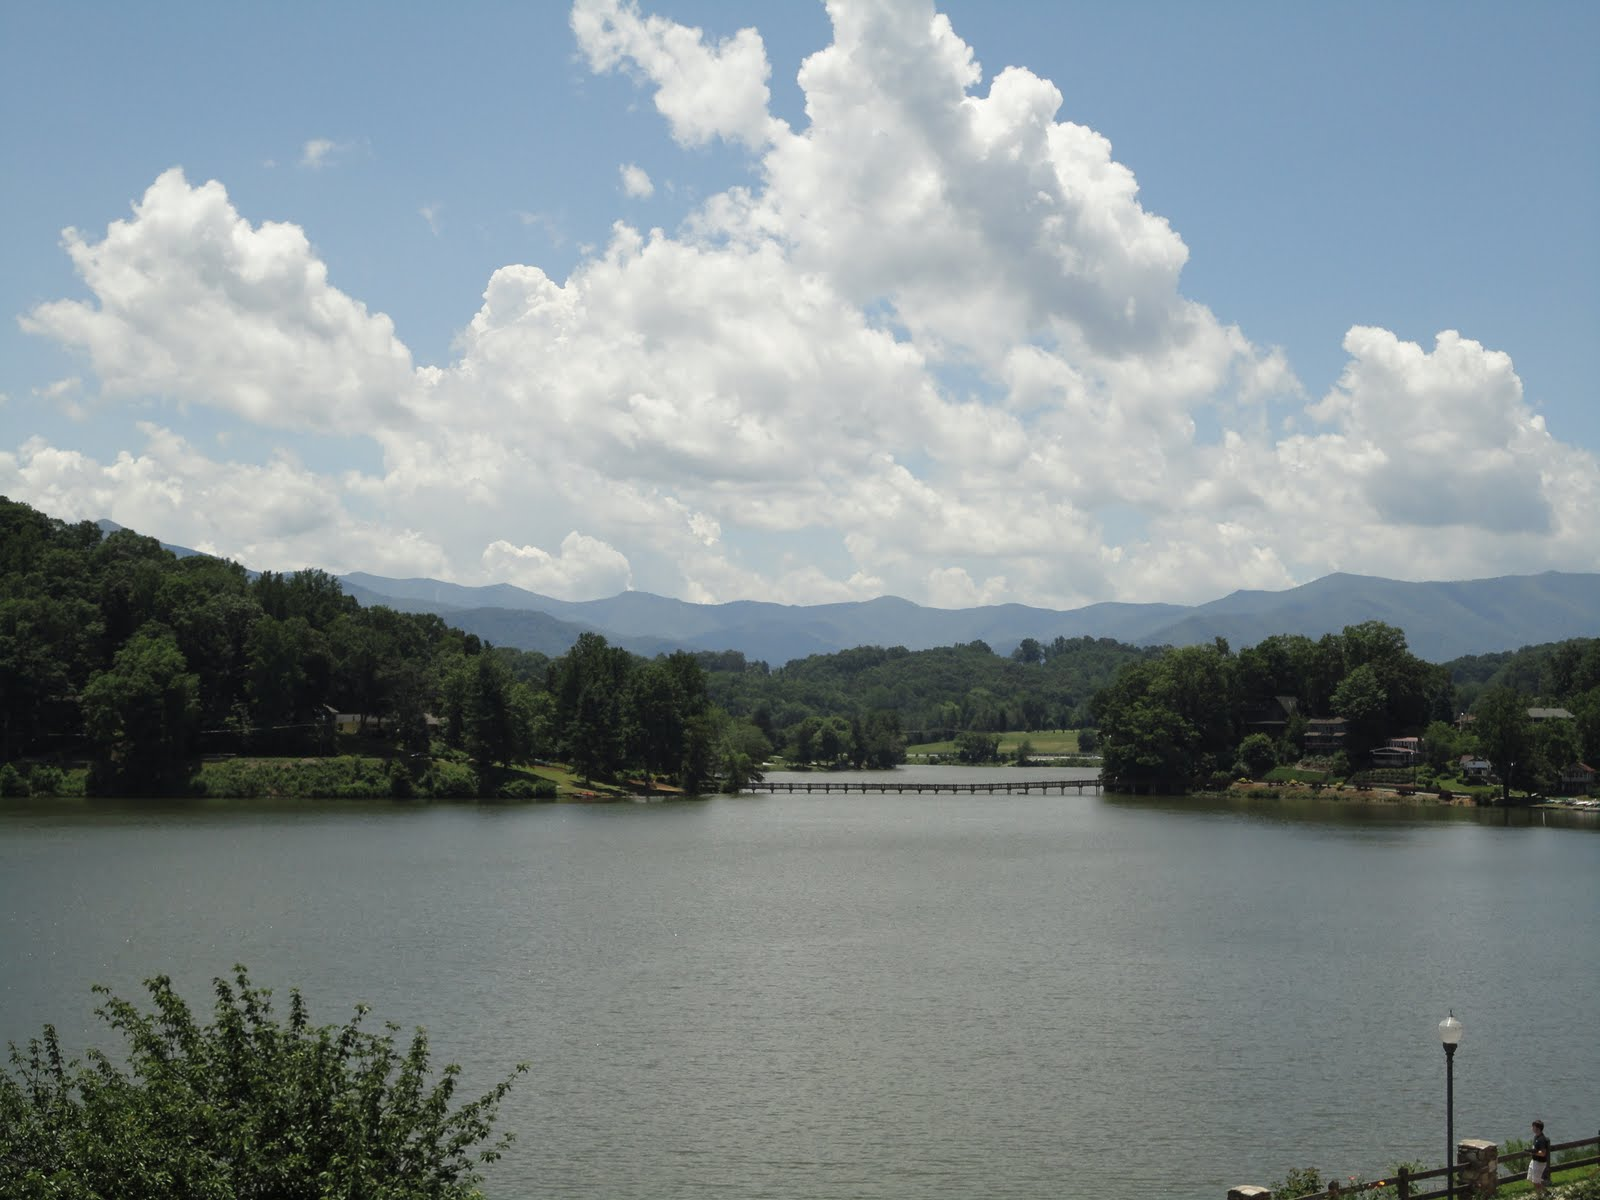 lake junaluska girls 07062018 the annual lake junaluska flea market will take place from 8 to 11:30 am saturday, june 9, at the nancy weldon outdoor gymnasium, 91.